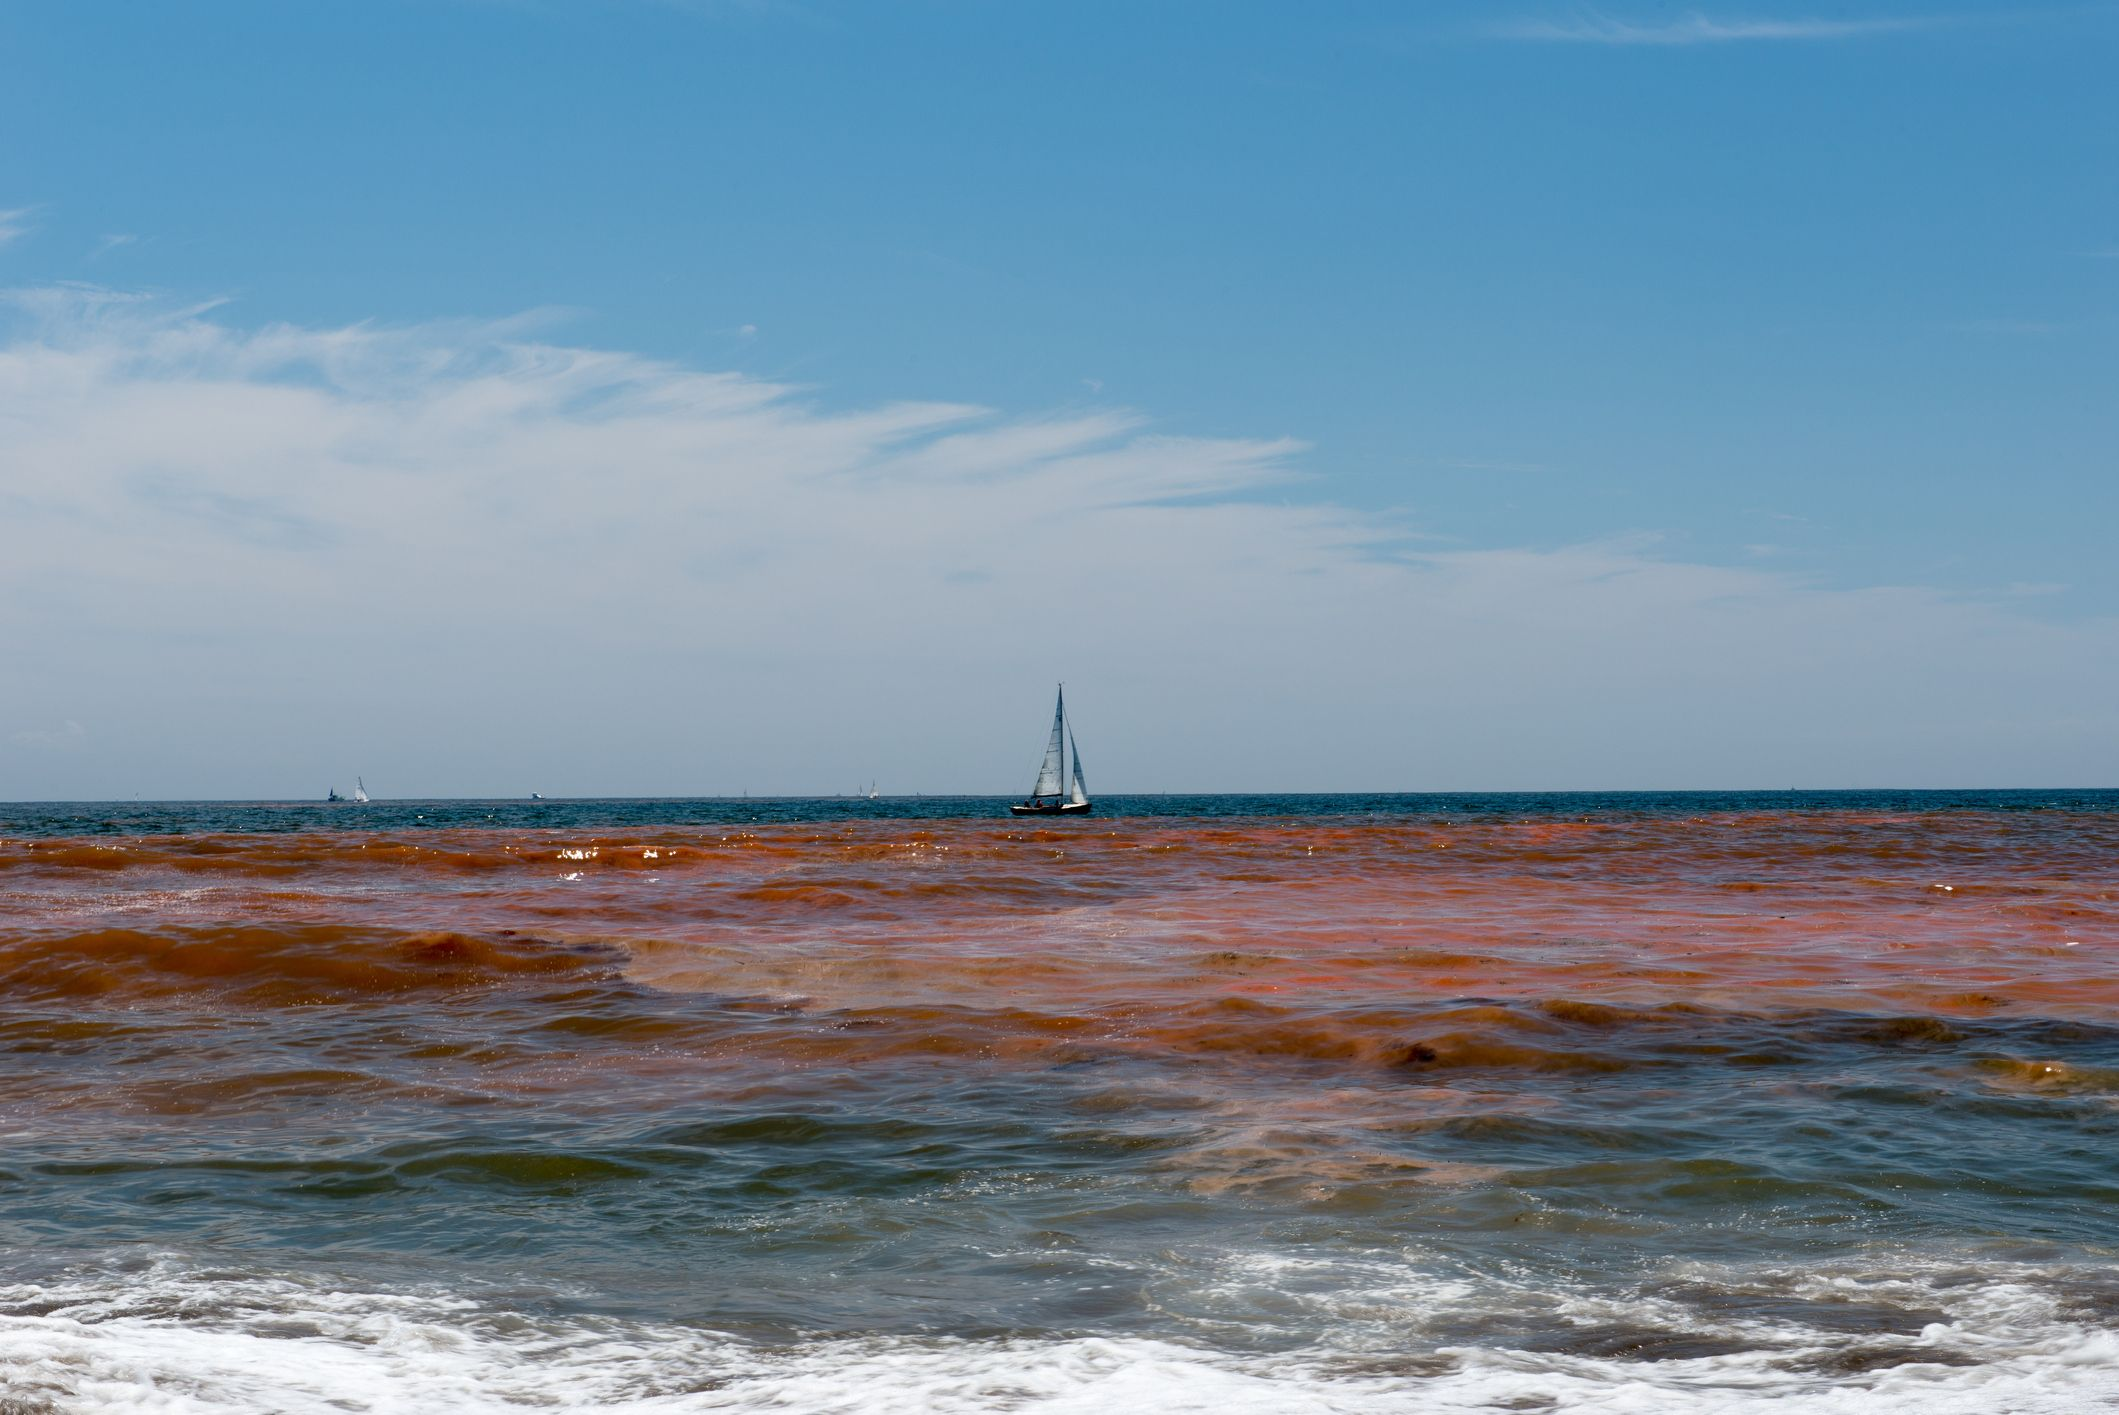 What S Going On With Red Tide Research Https Www2 Floridarealtors Org News Media News Ar Panama City Beach Florida Panama City Beach Real Estate Photography